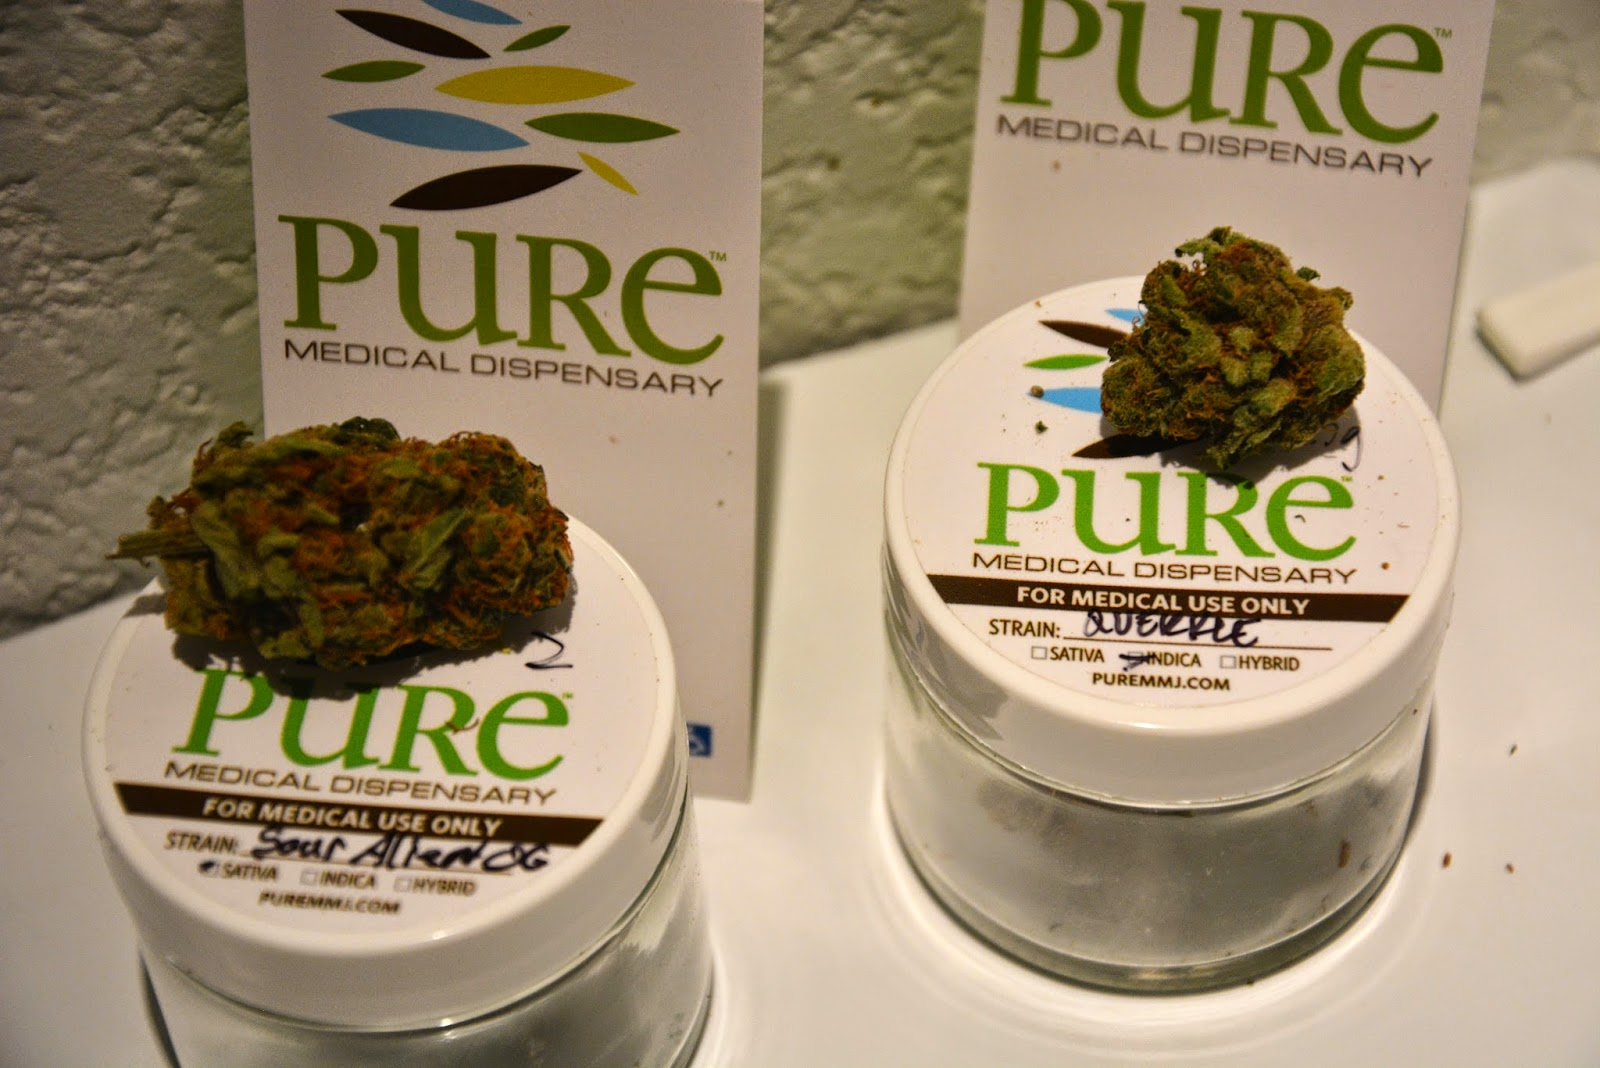 PURE Medical Dispensary